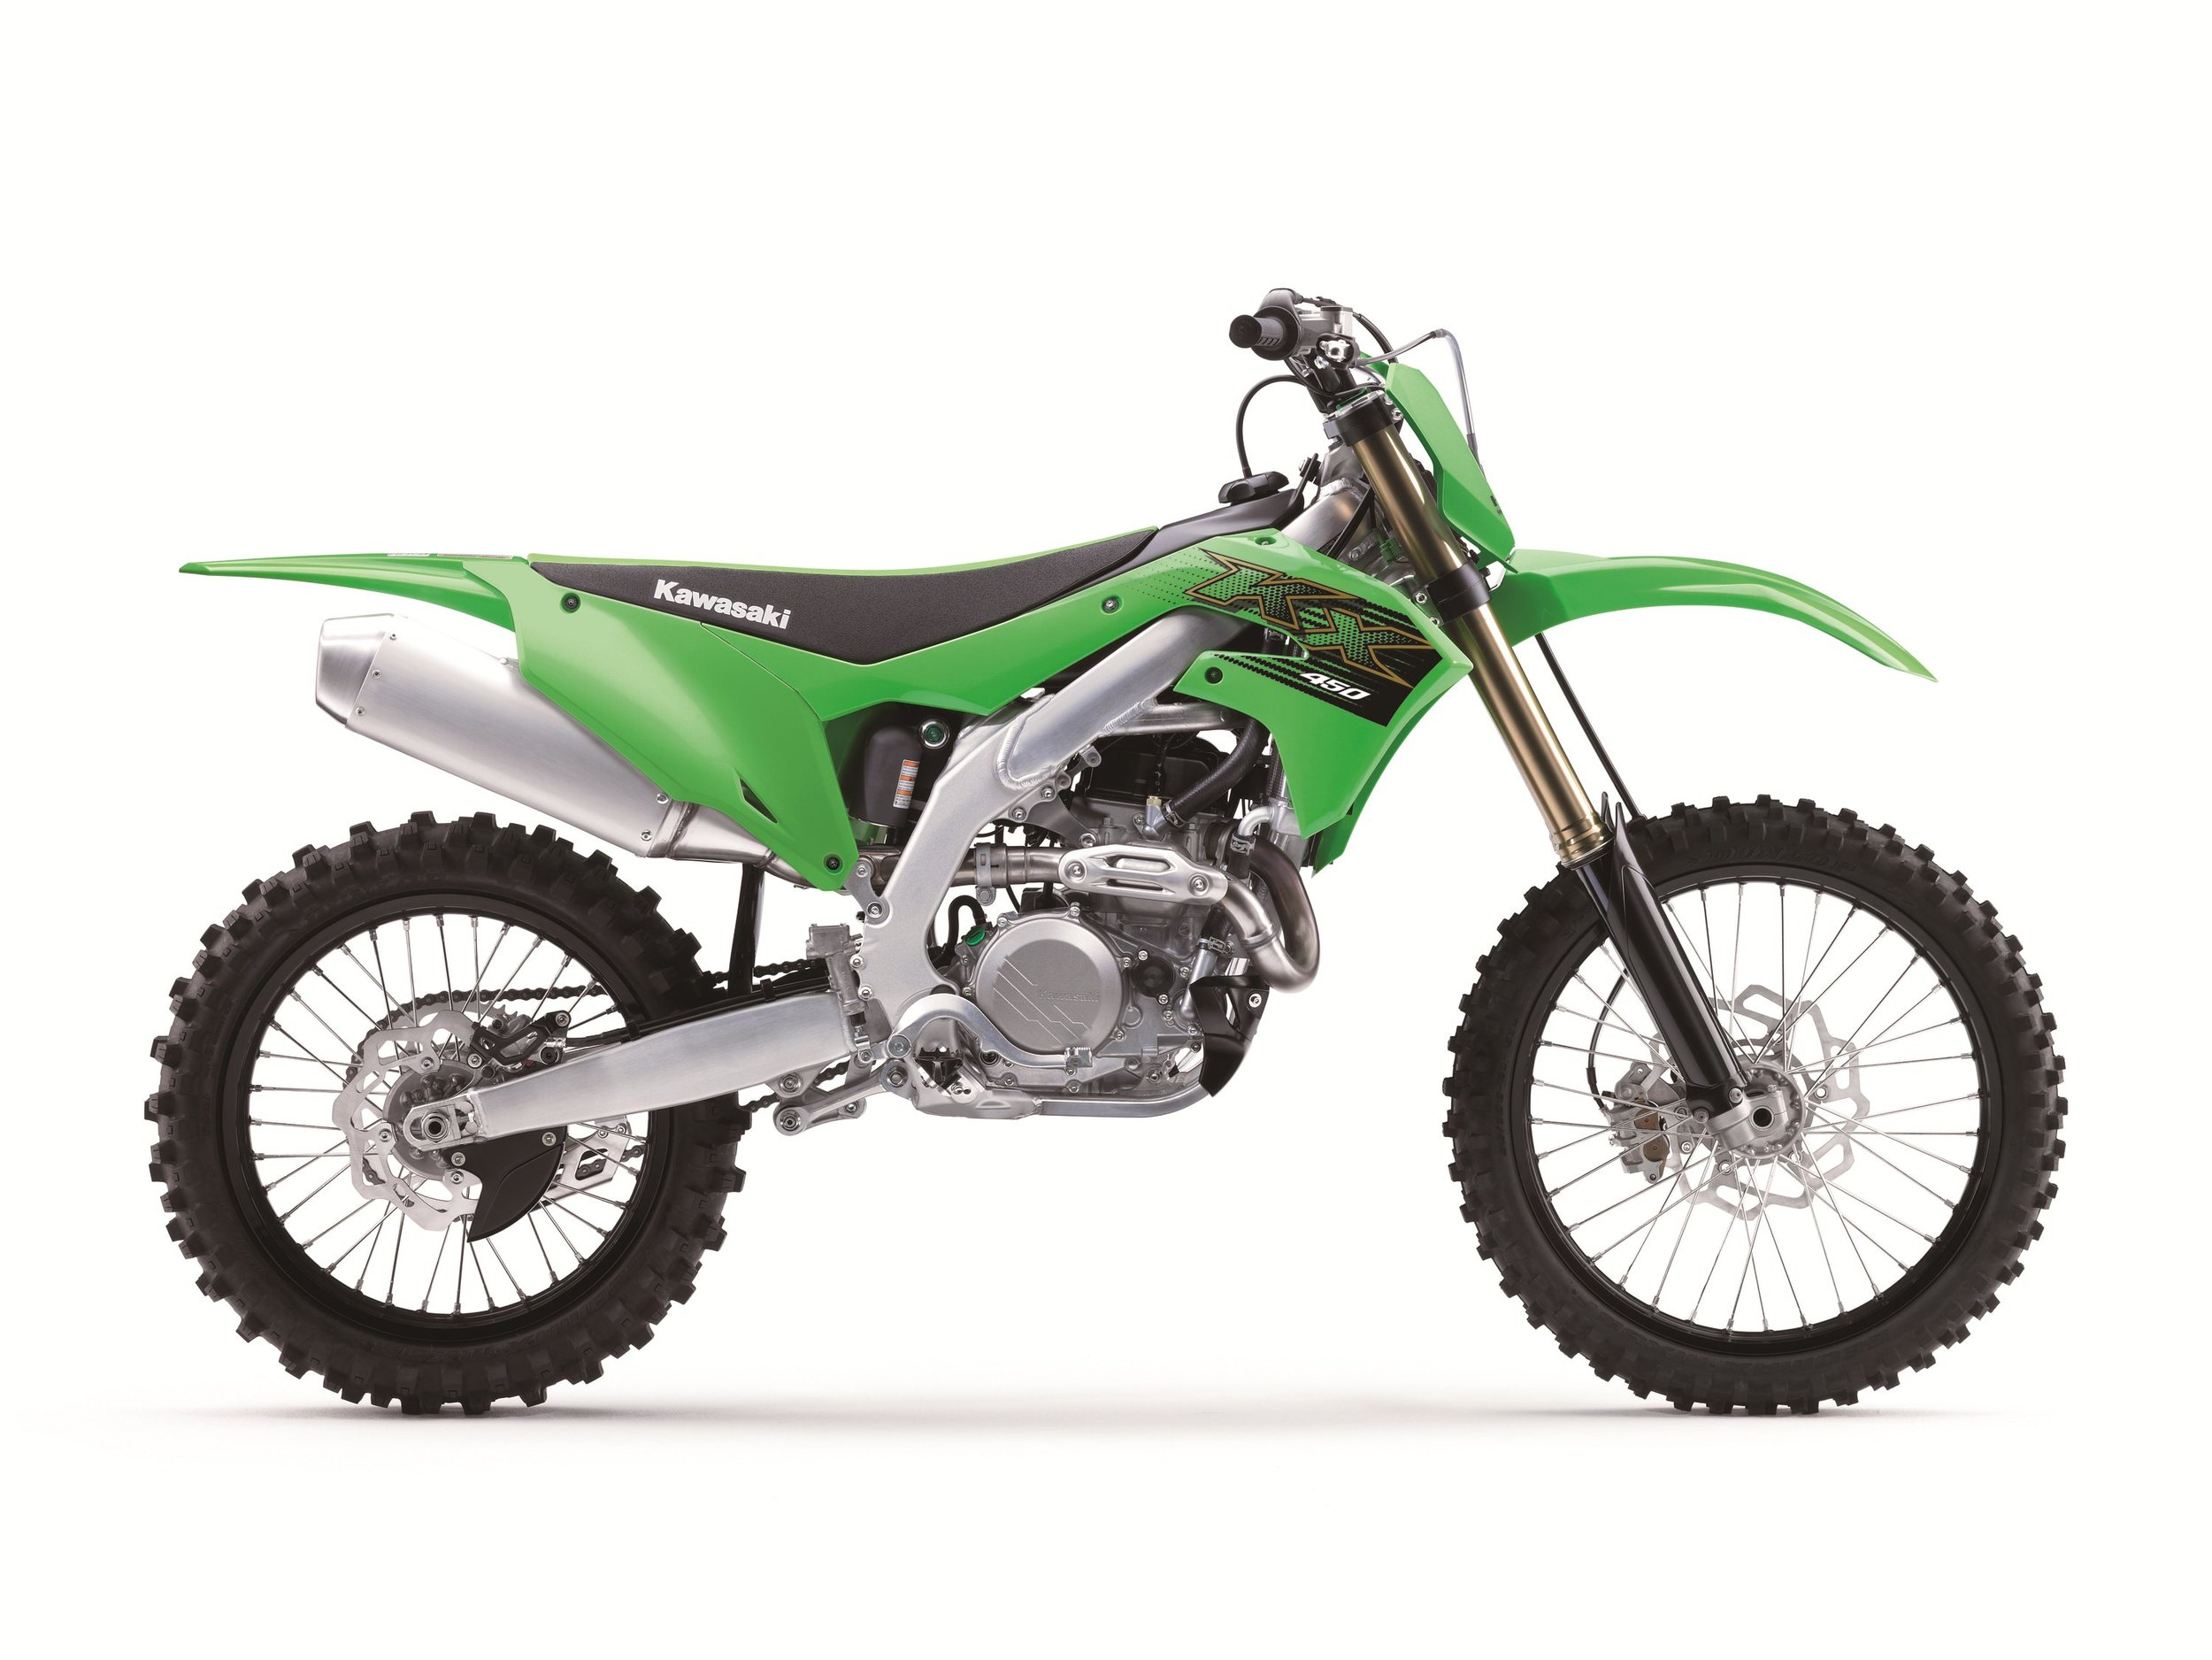 20KX450J_201GN1DRS2CG_A_3.high.jpeg